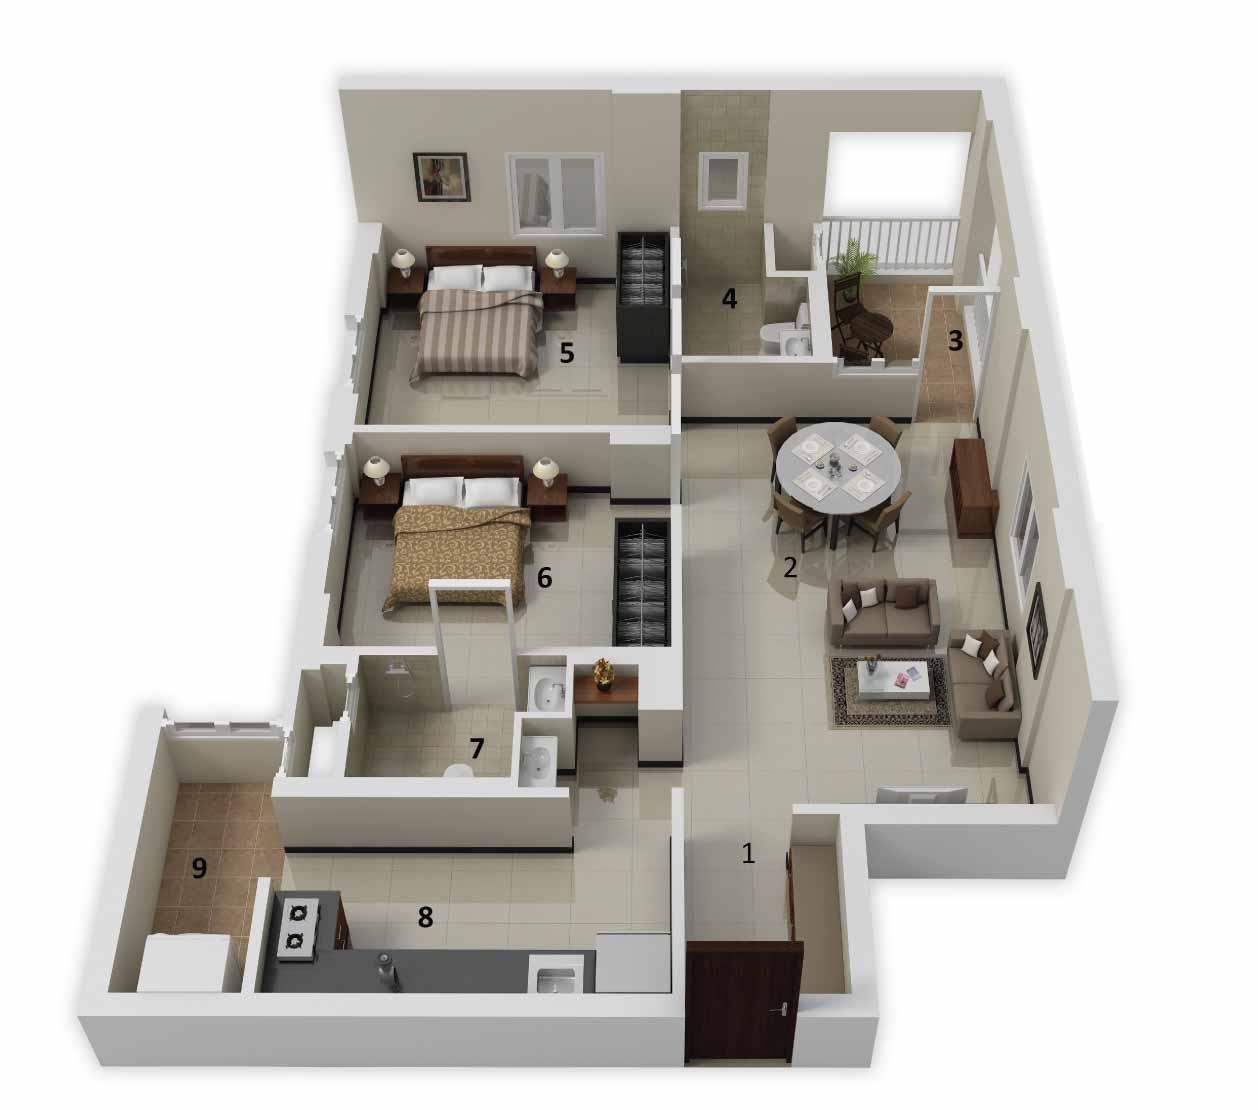 25 more 2 bedroom 3d floor plans for 2 bedroom apartment layout ideas